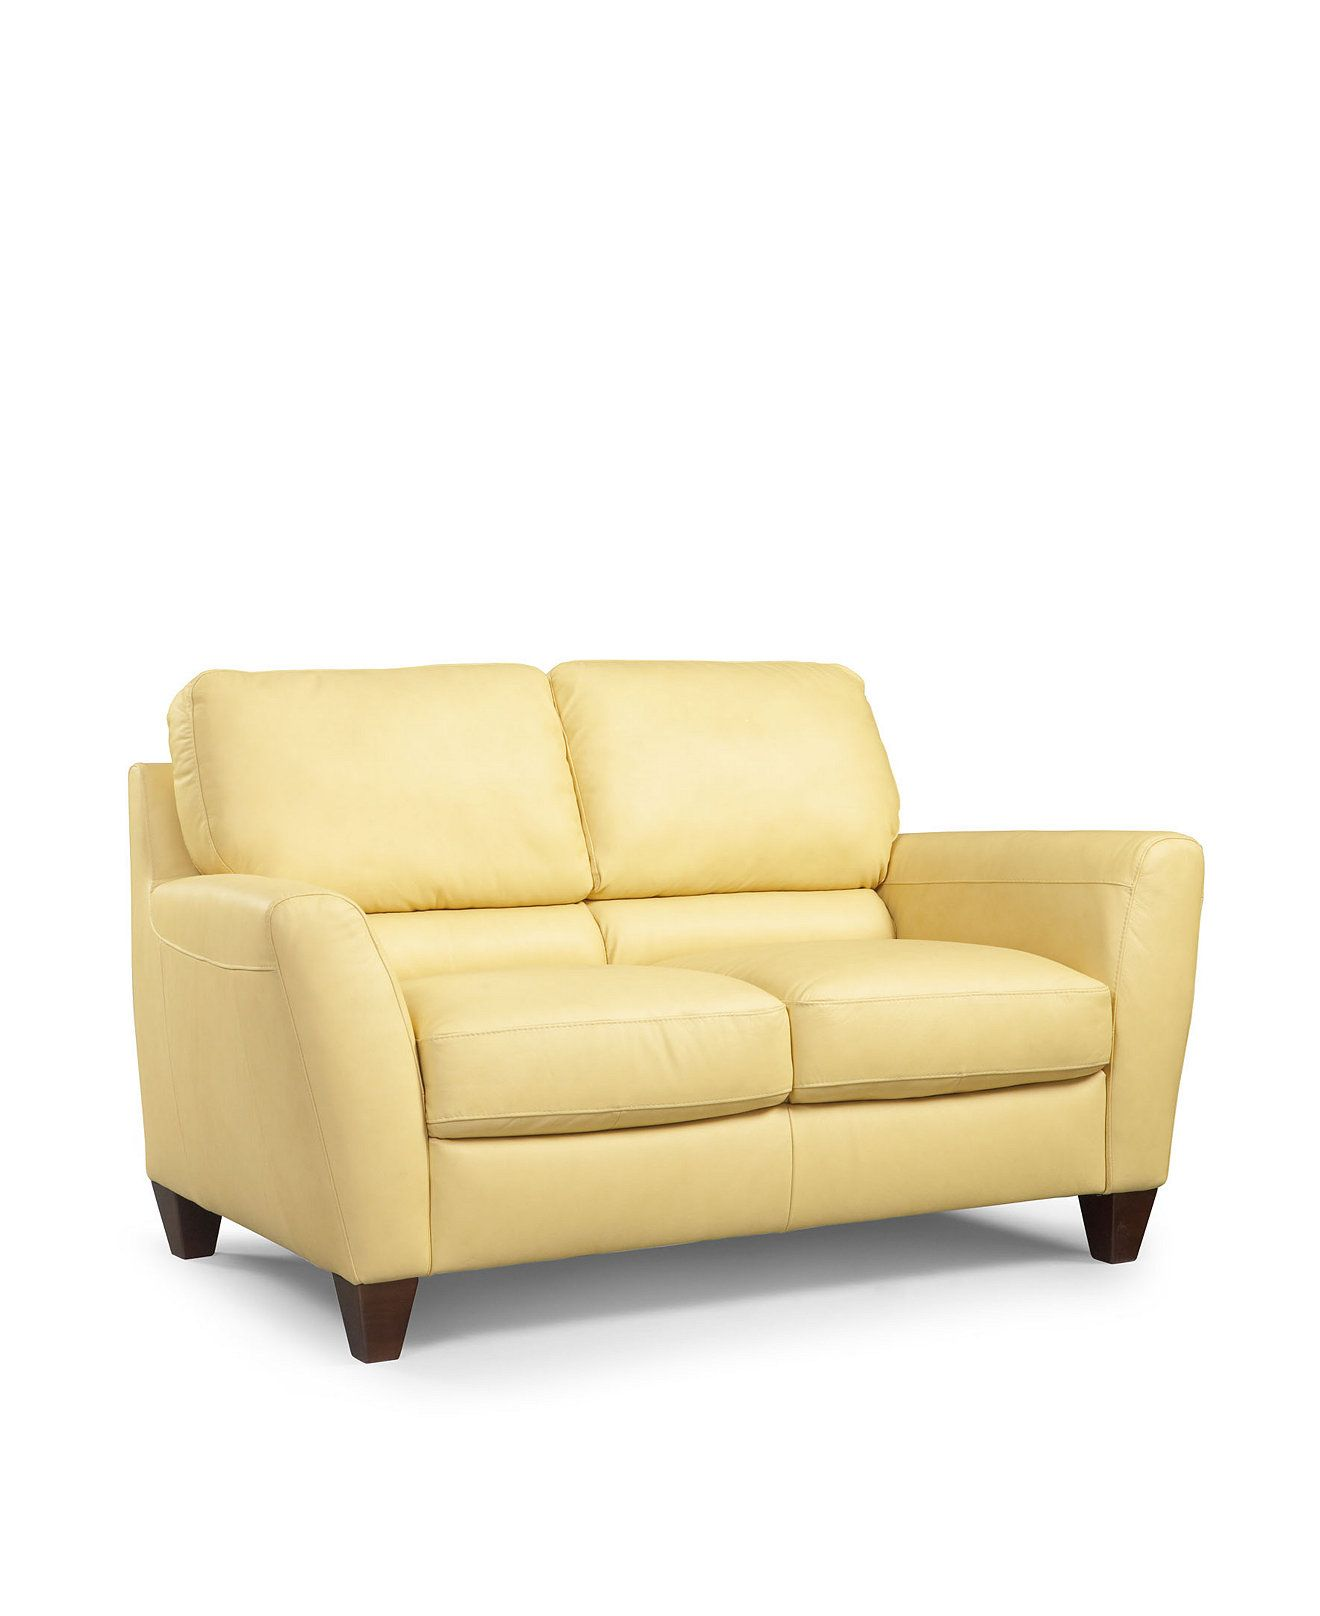 Almafi Leather Loveseat Couches Sofas Furniture Macy S